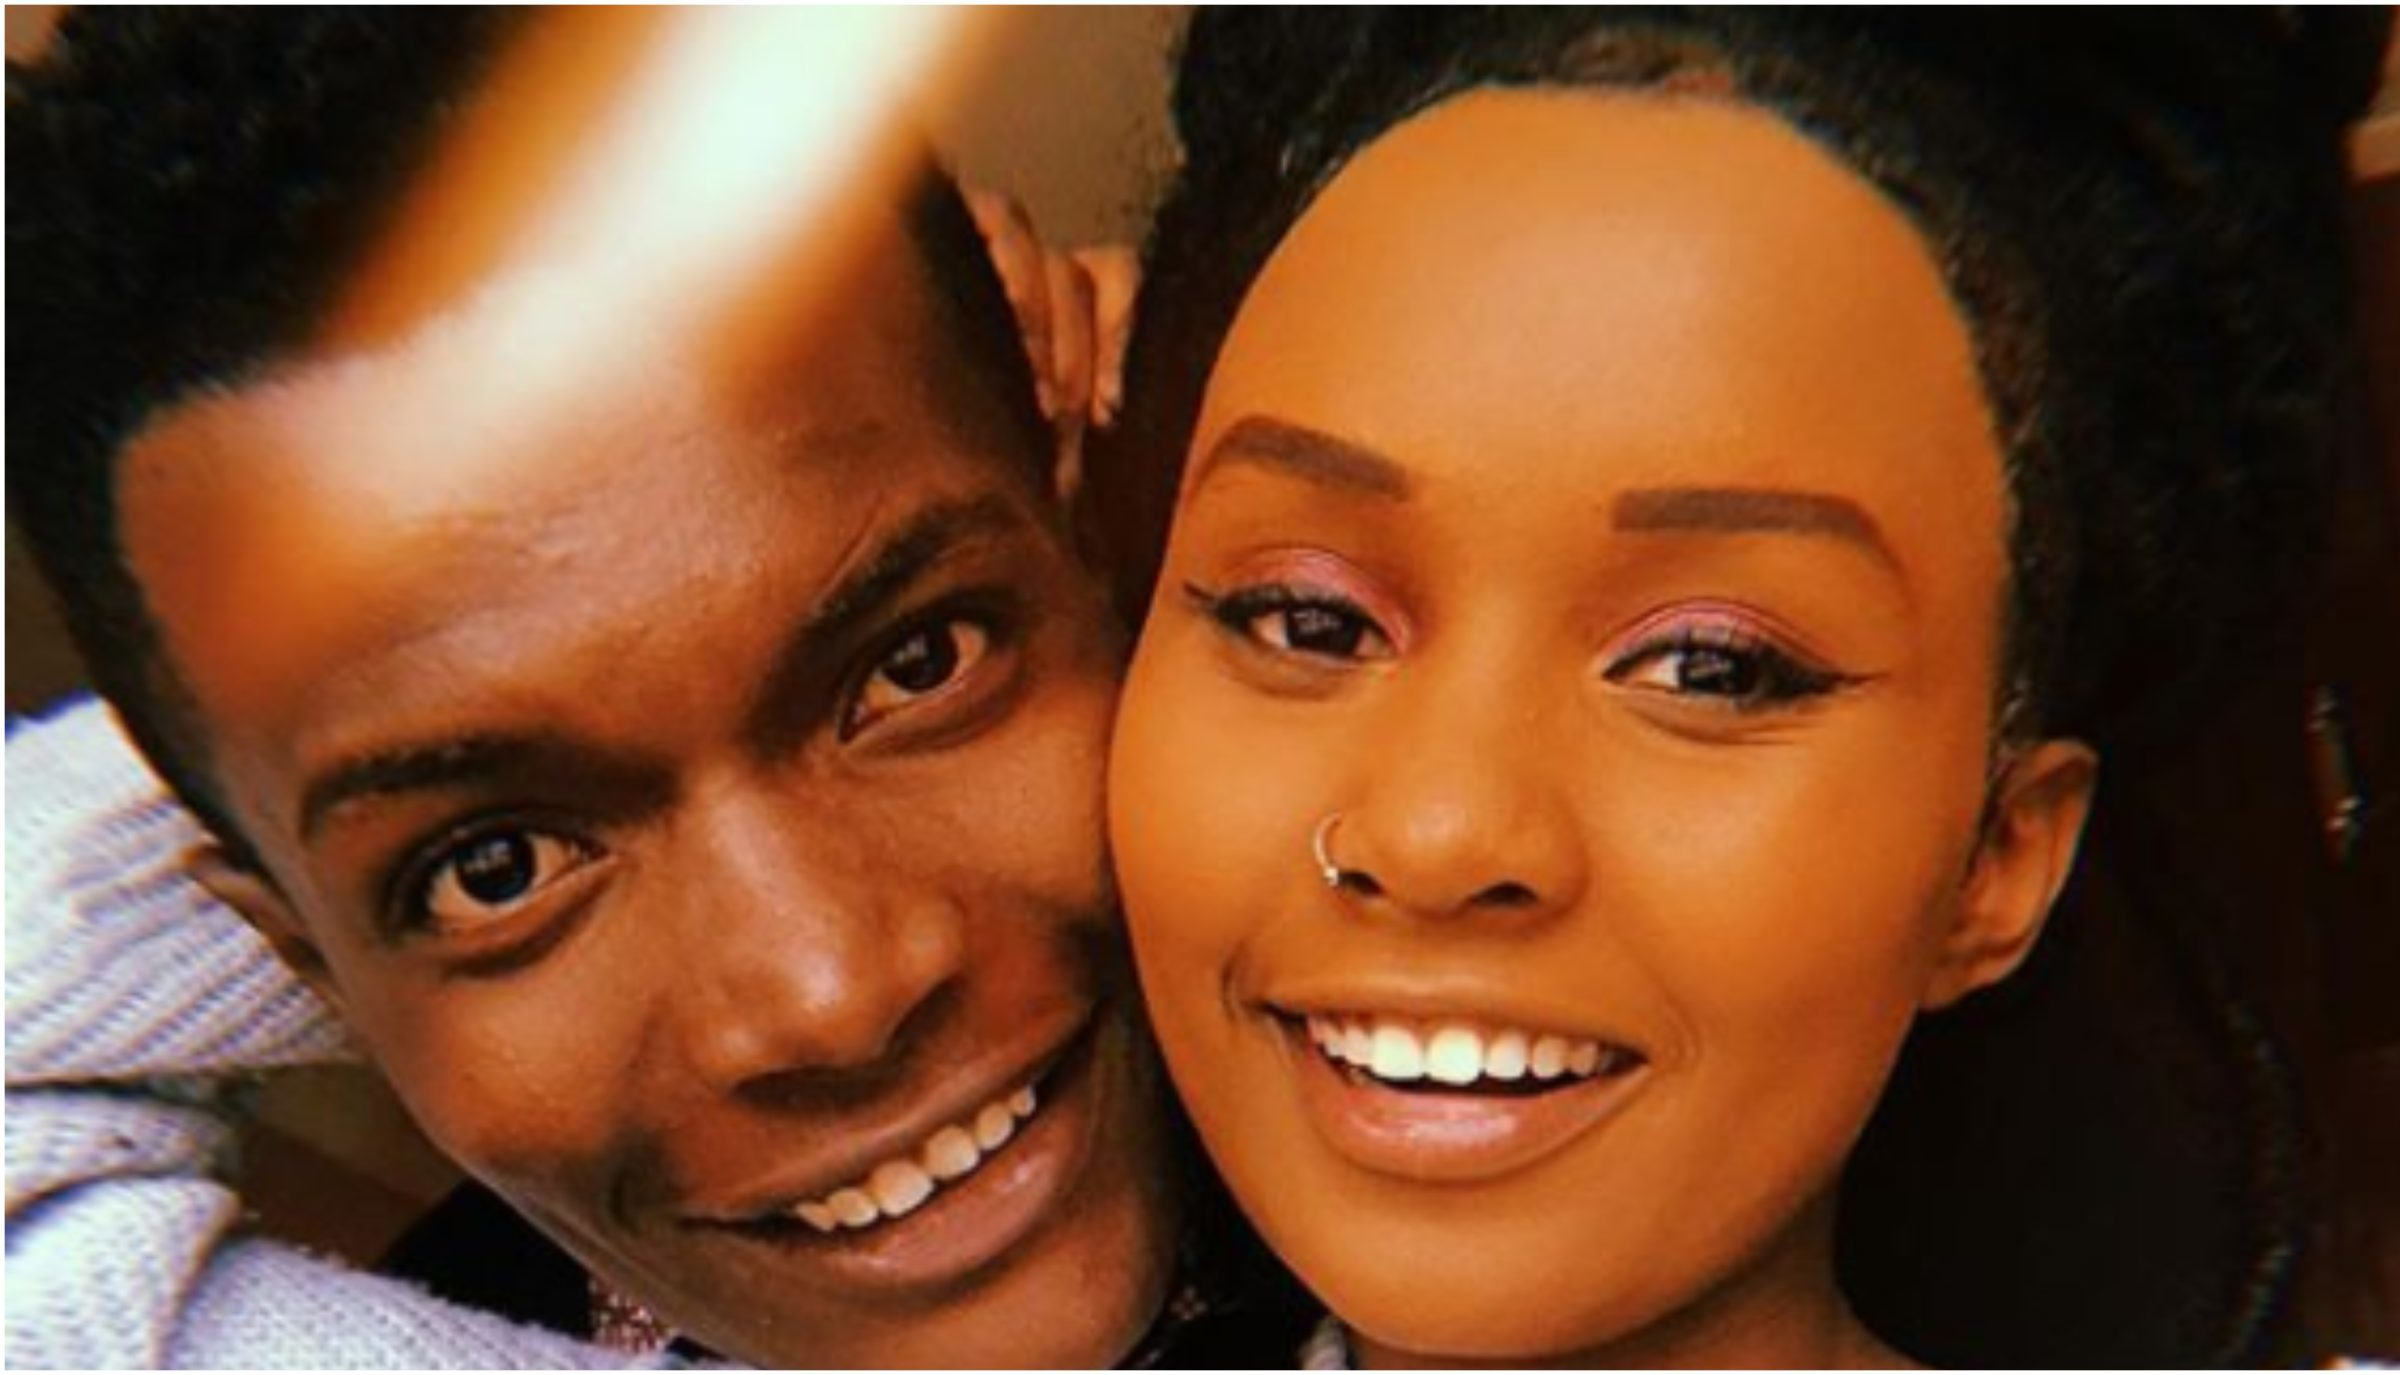 Tyler Mbaya and girlfriend break the internet in loved up photos during romantic shoot